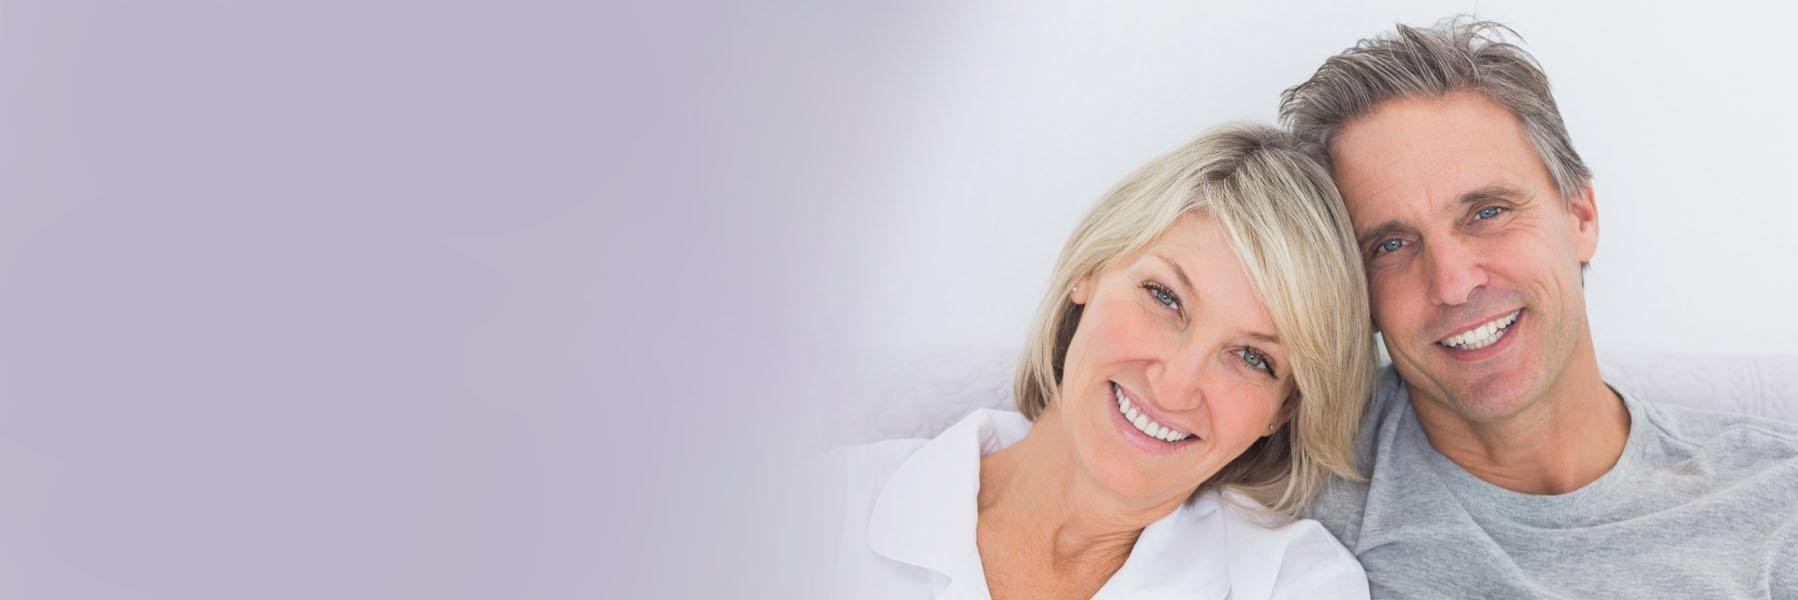 Man and woman smiling | Fontana CA Dental Implants